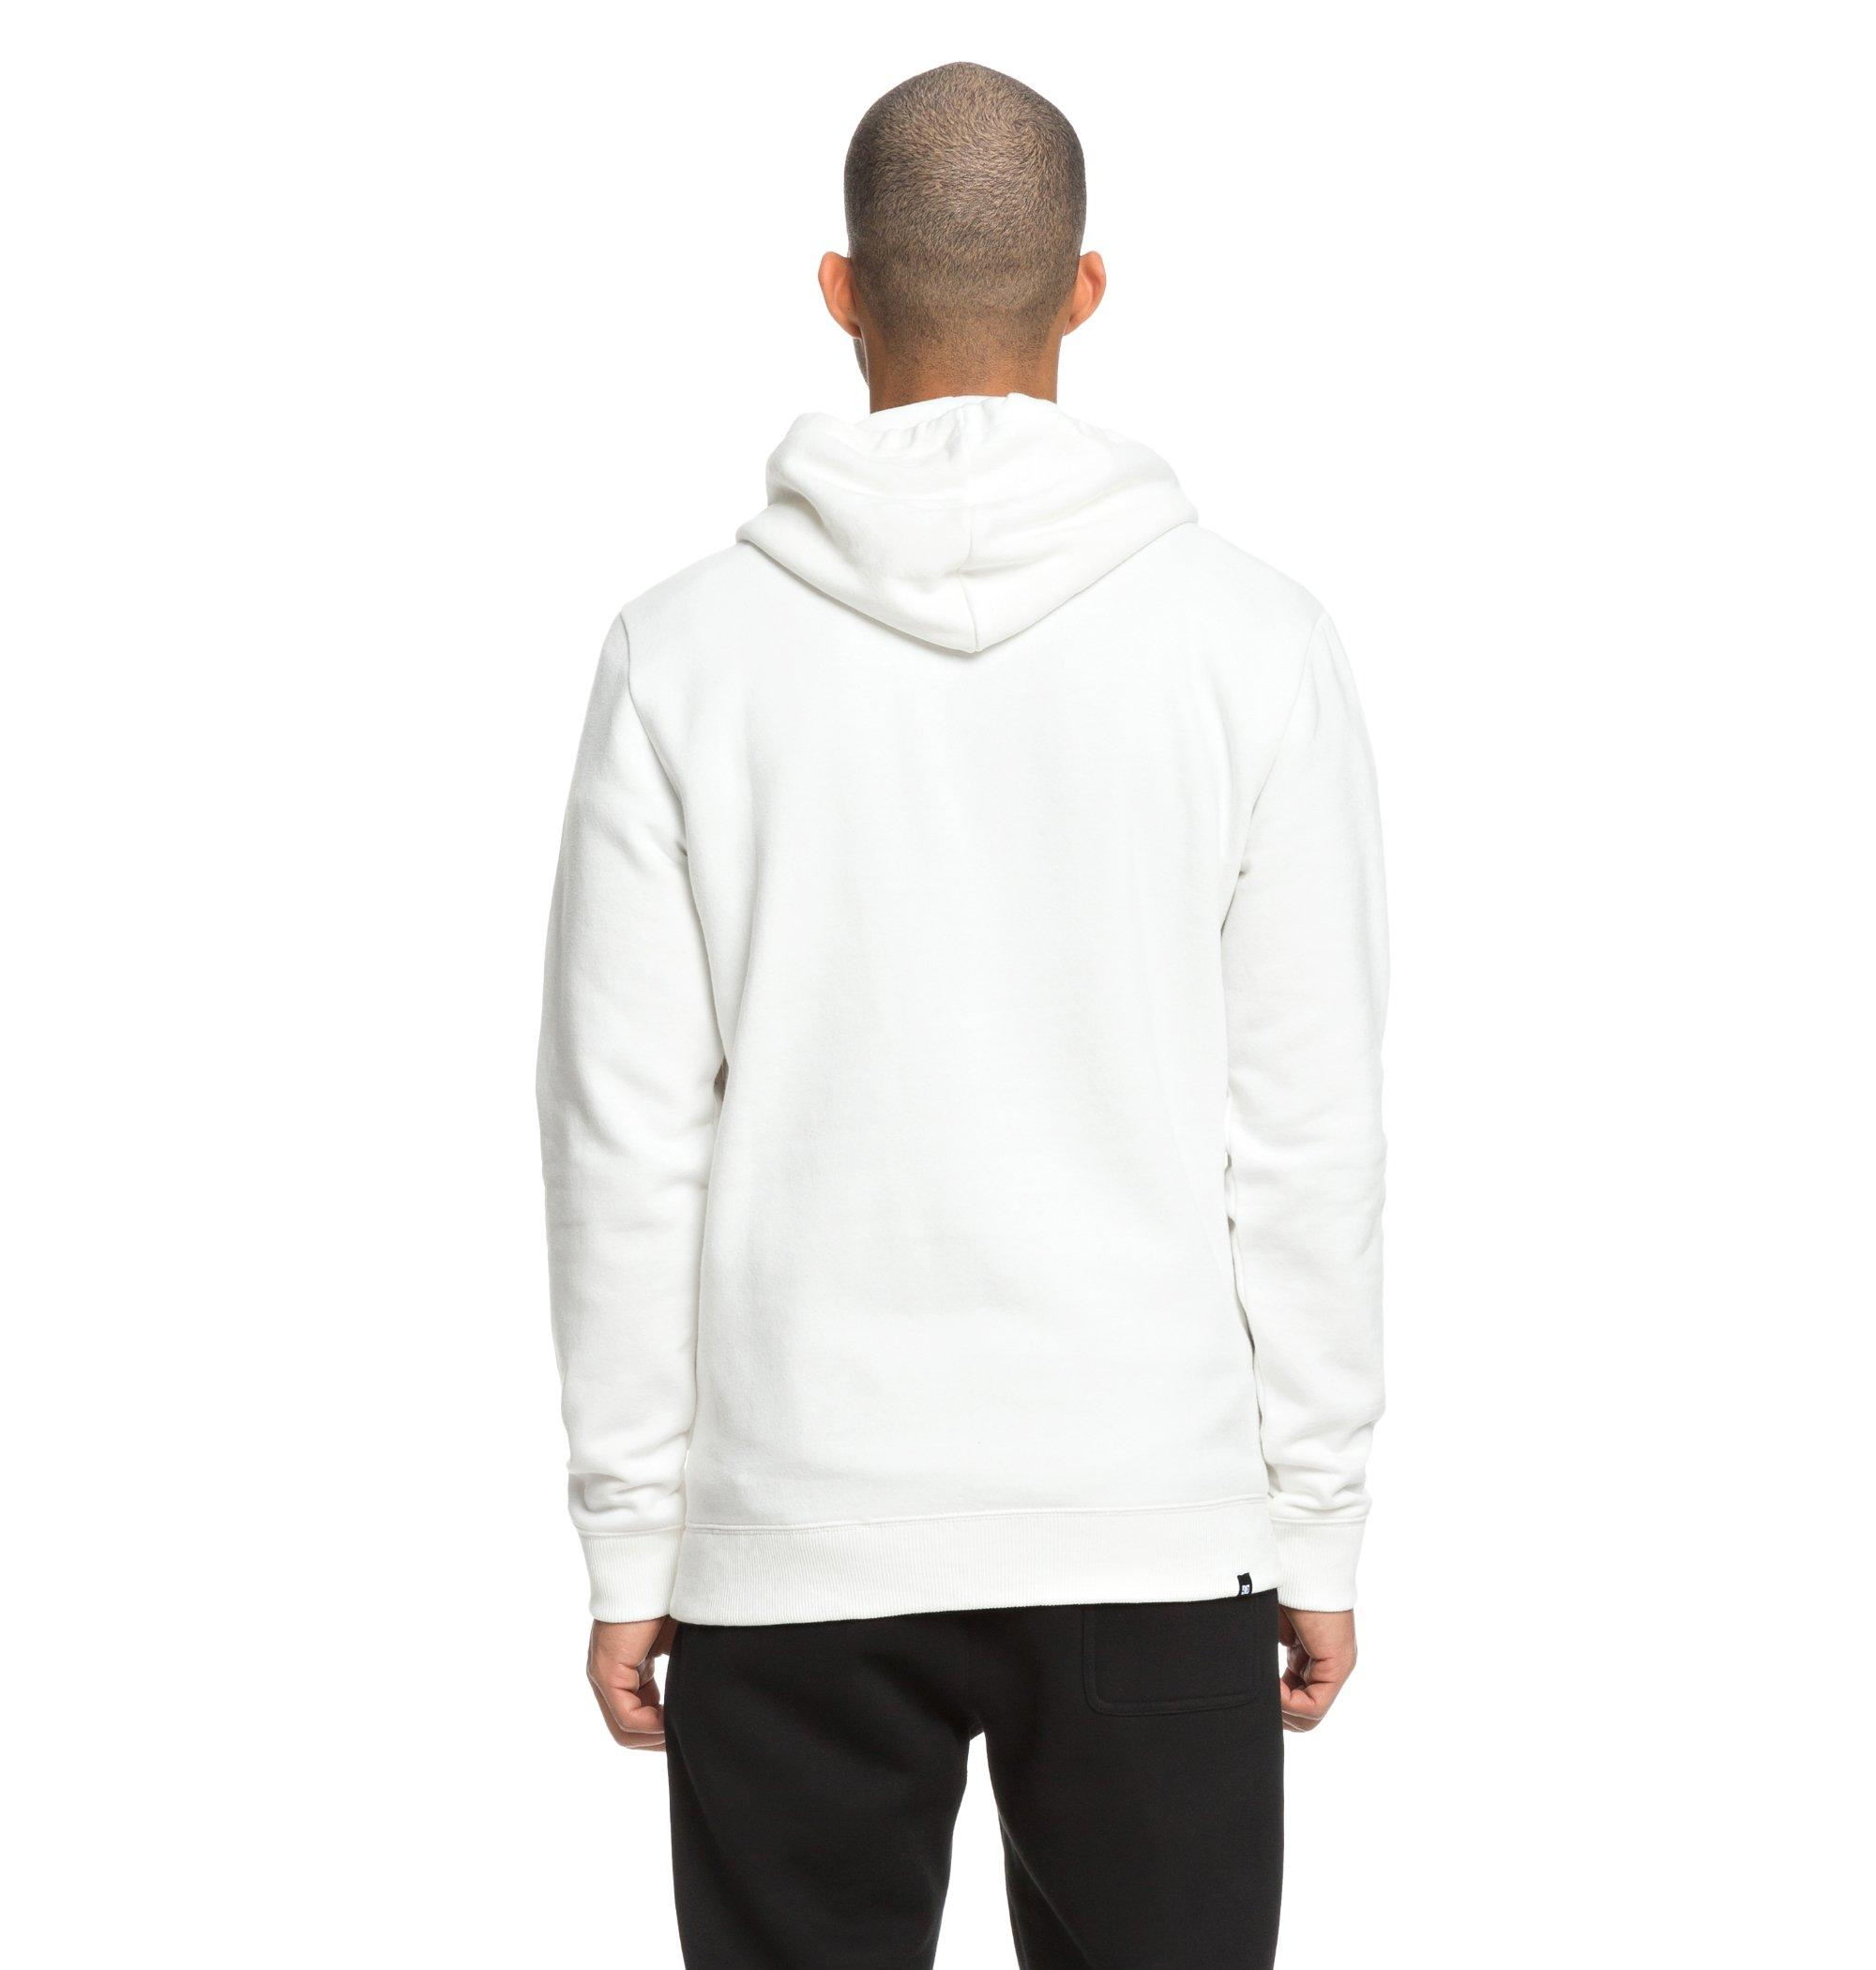 Sudadera Dc Shoes modelo Vertical Zone en color blanco para hombre-g